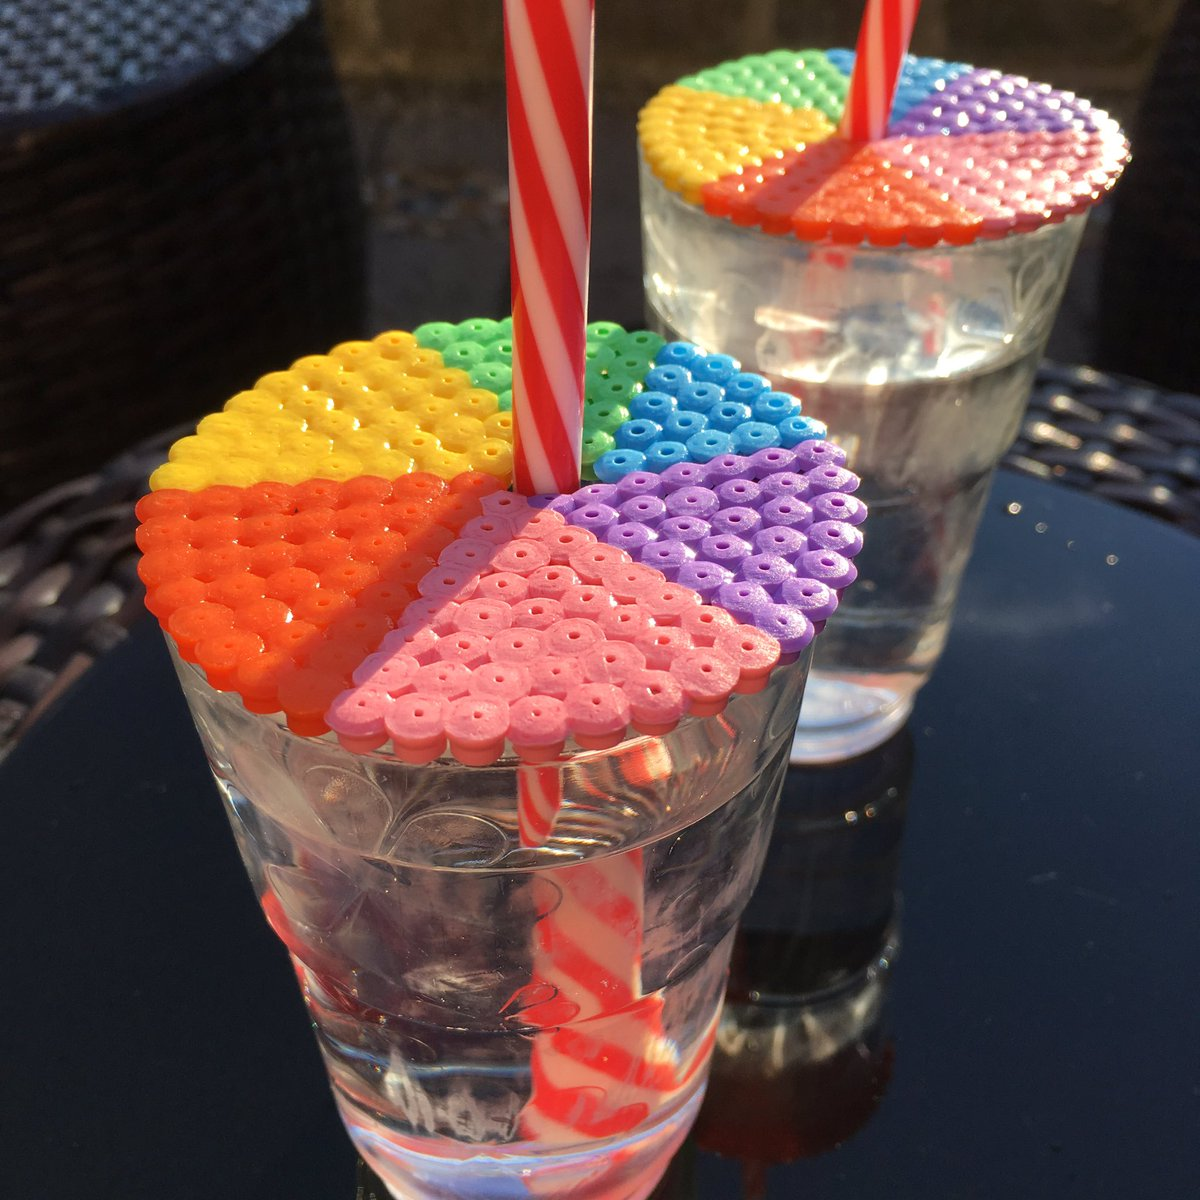 Hama bead cup toppers! -  http:// aboxofbuttons.wordpress.com/2017/07/05/ham a-bead-cup-toppers/ &nbsp; …  #diy #diyblog #wordpress #summer #summerdrinks #wordpress #wordpressblog #blog #hamabeads<br>http://pic.twitter.com/YmnW5fK5Yj